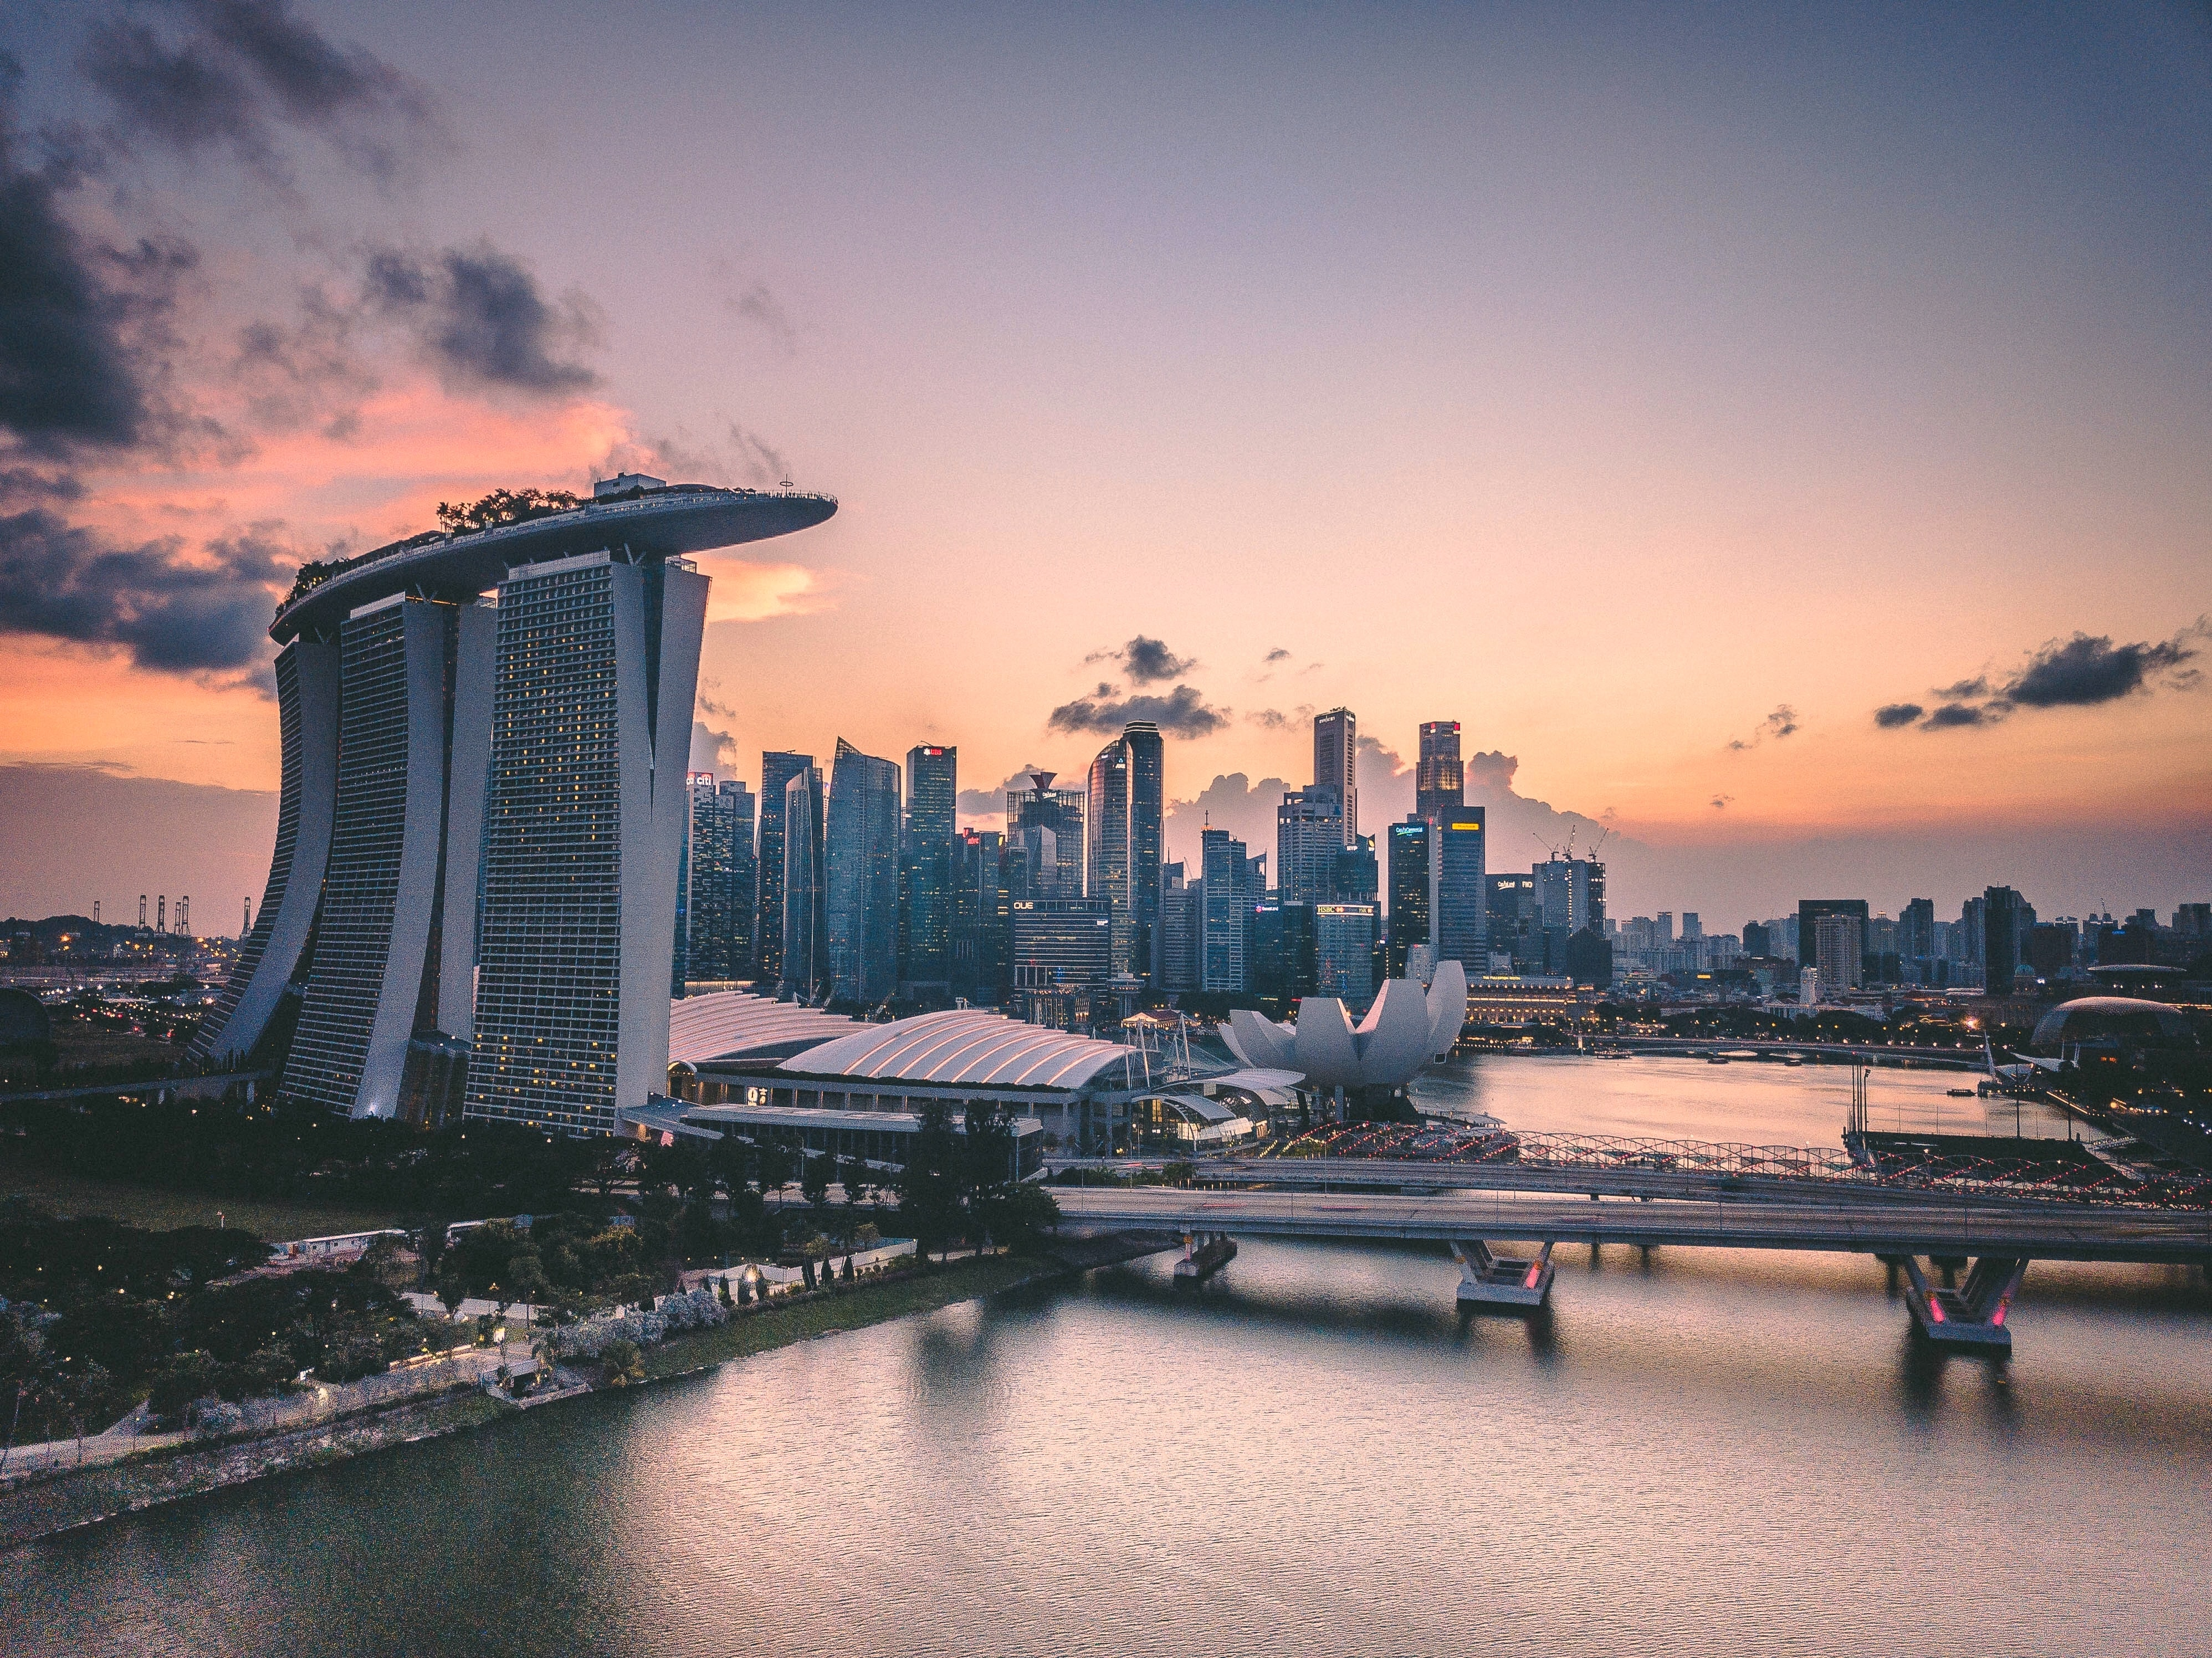 Singapore set to continue to be destination of choice in Asia for top talent in finance and tech